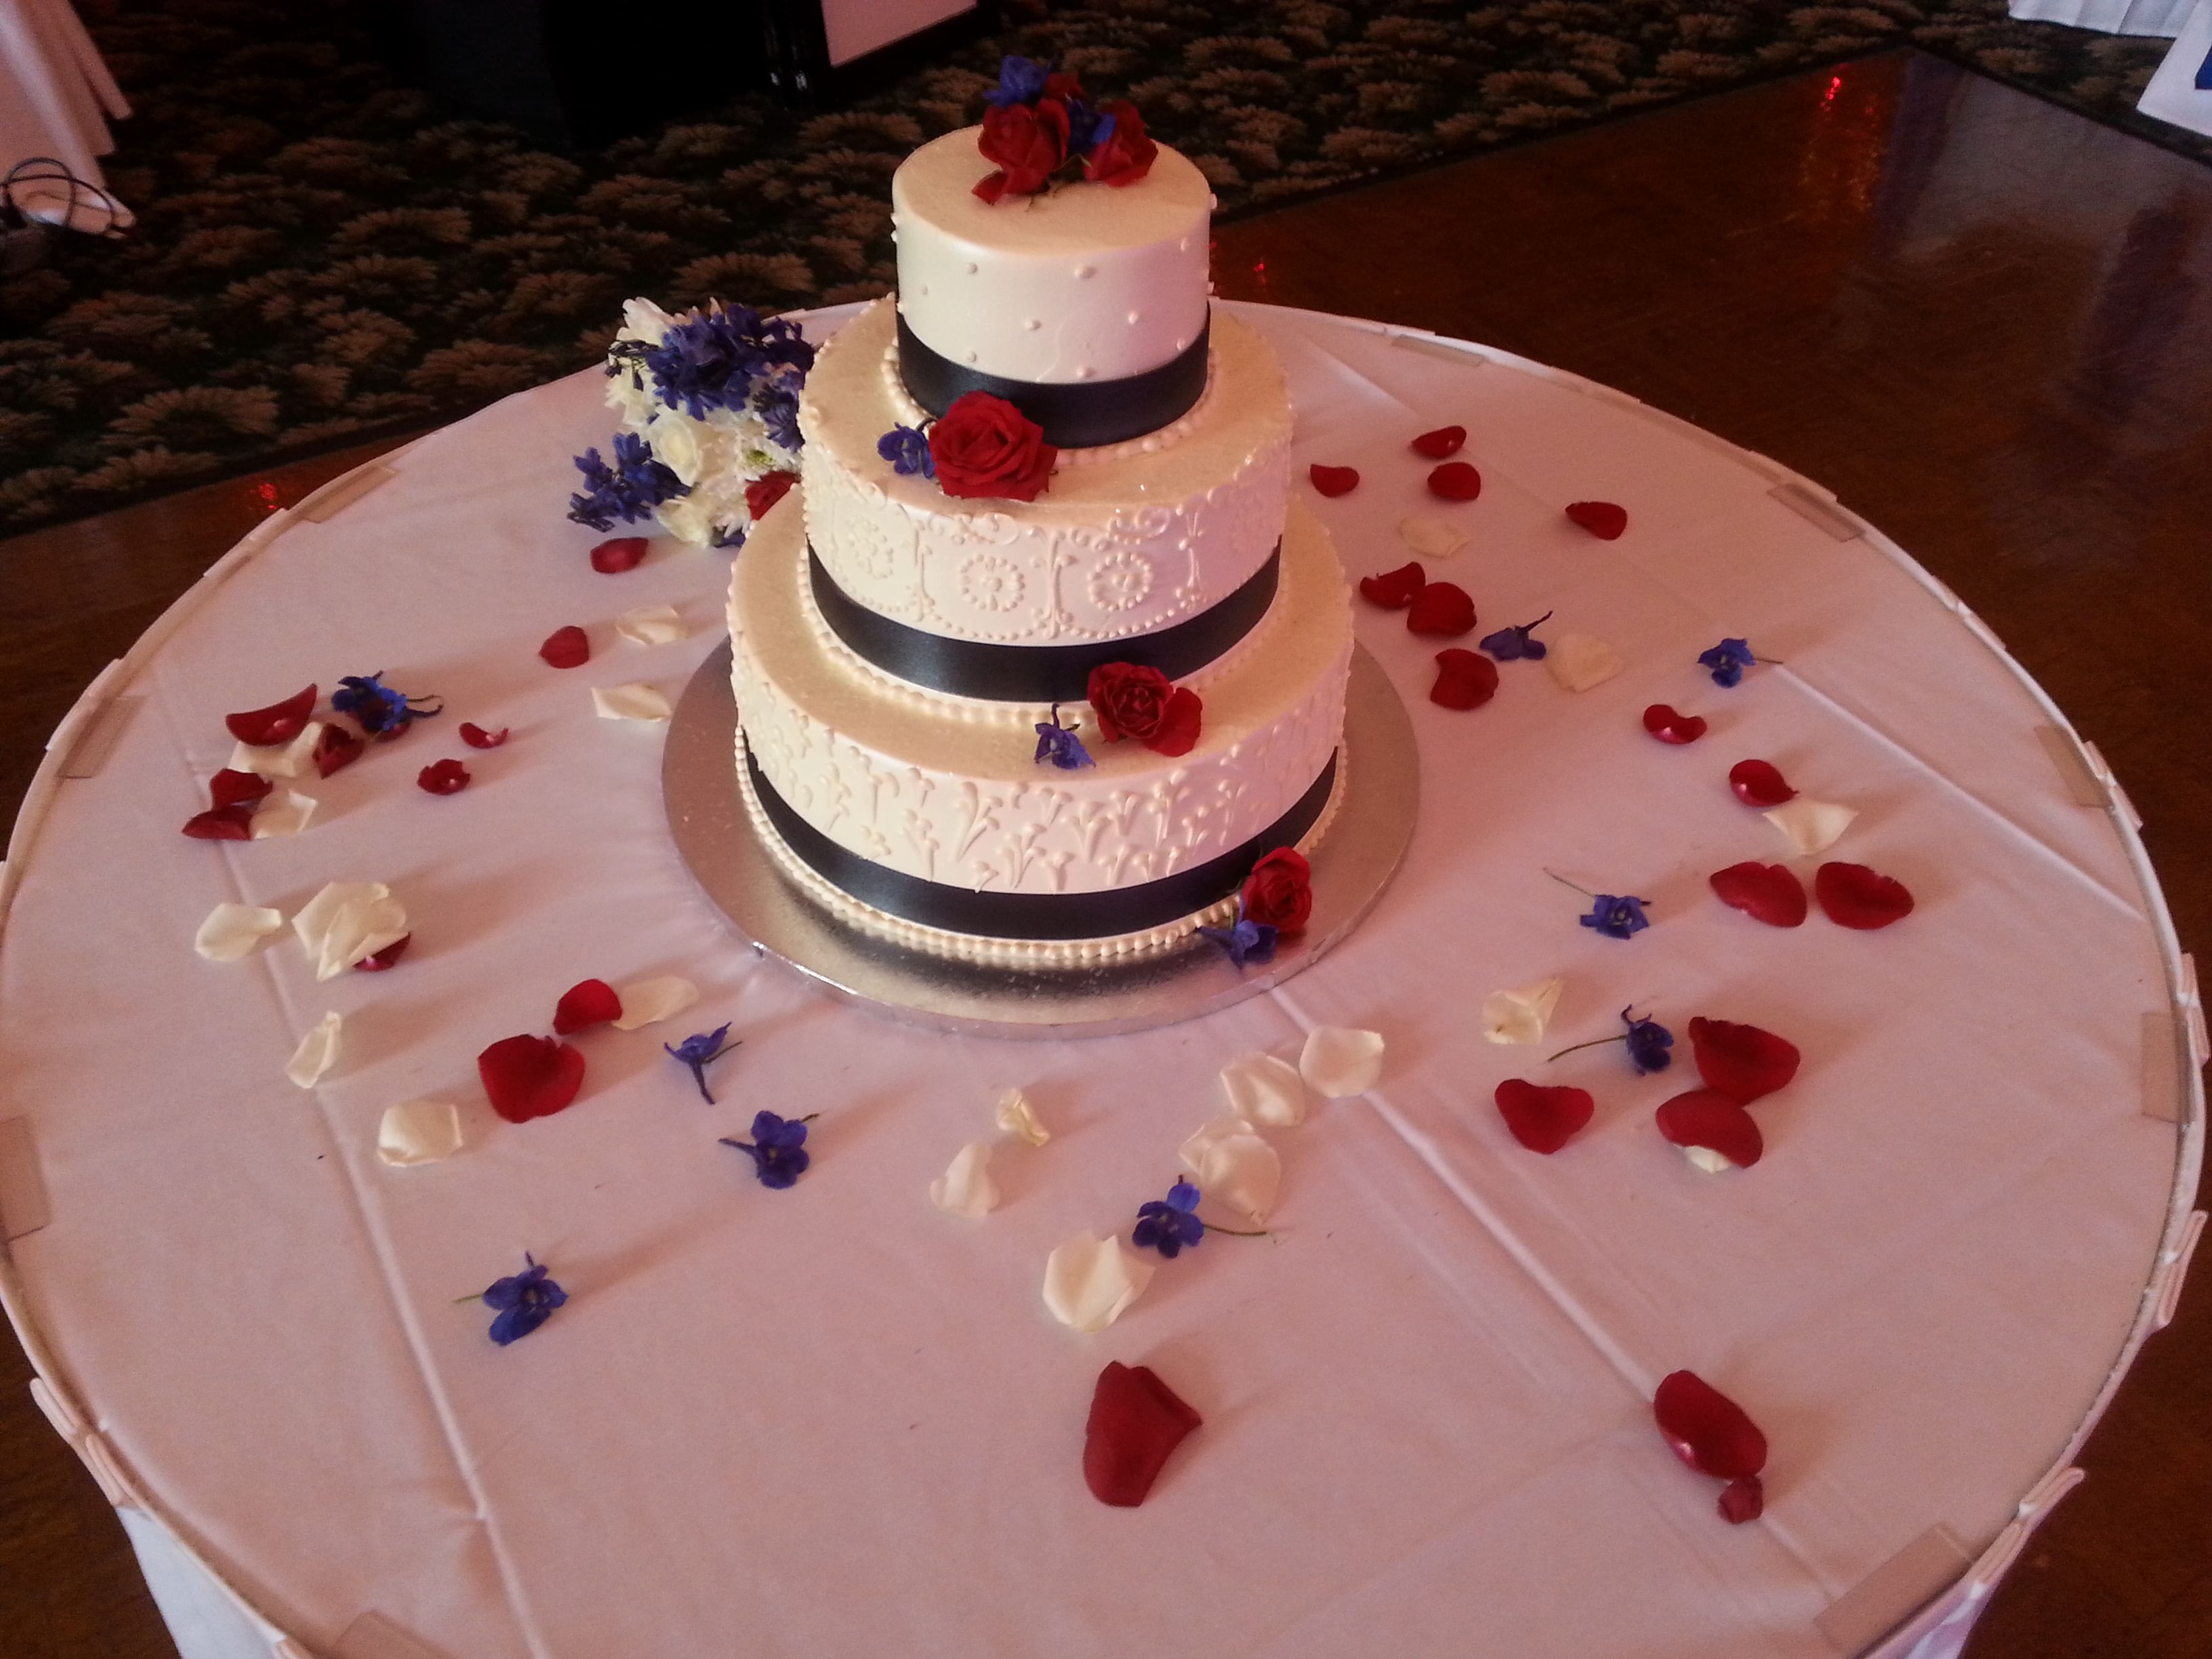 Dressed Cake With Red Roses And Blue Delphinium For A July 5th Summer Wedding Cake Dress Cake Wedding Cakes